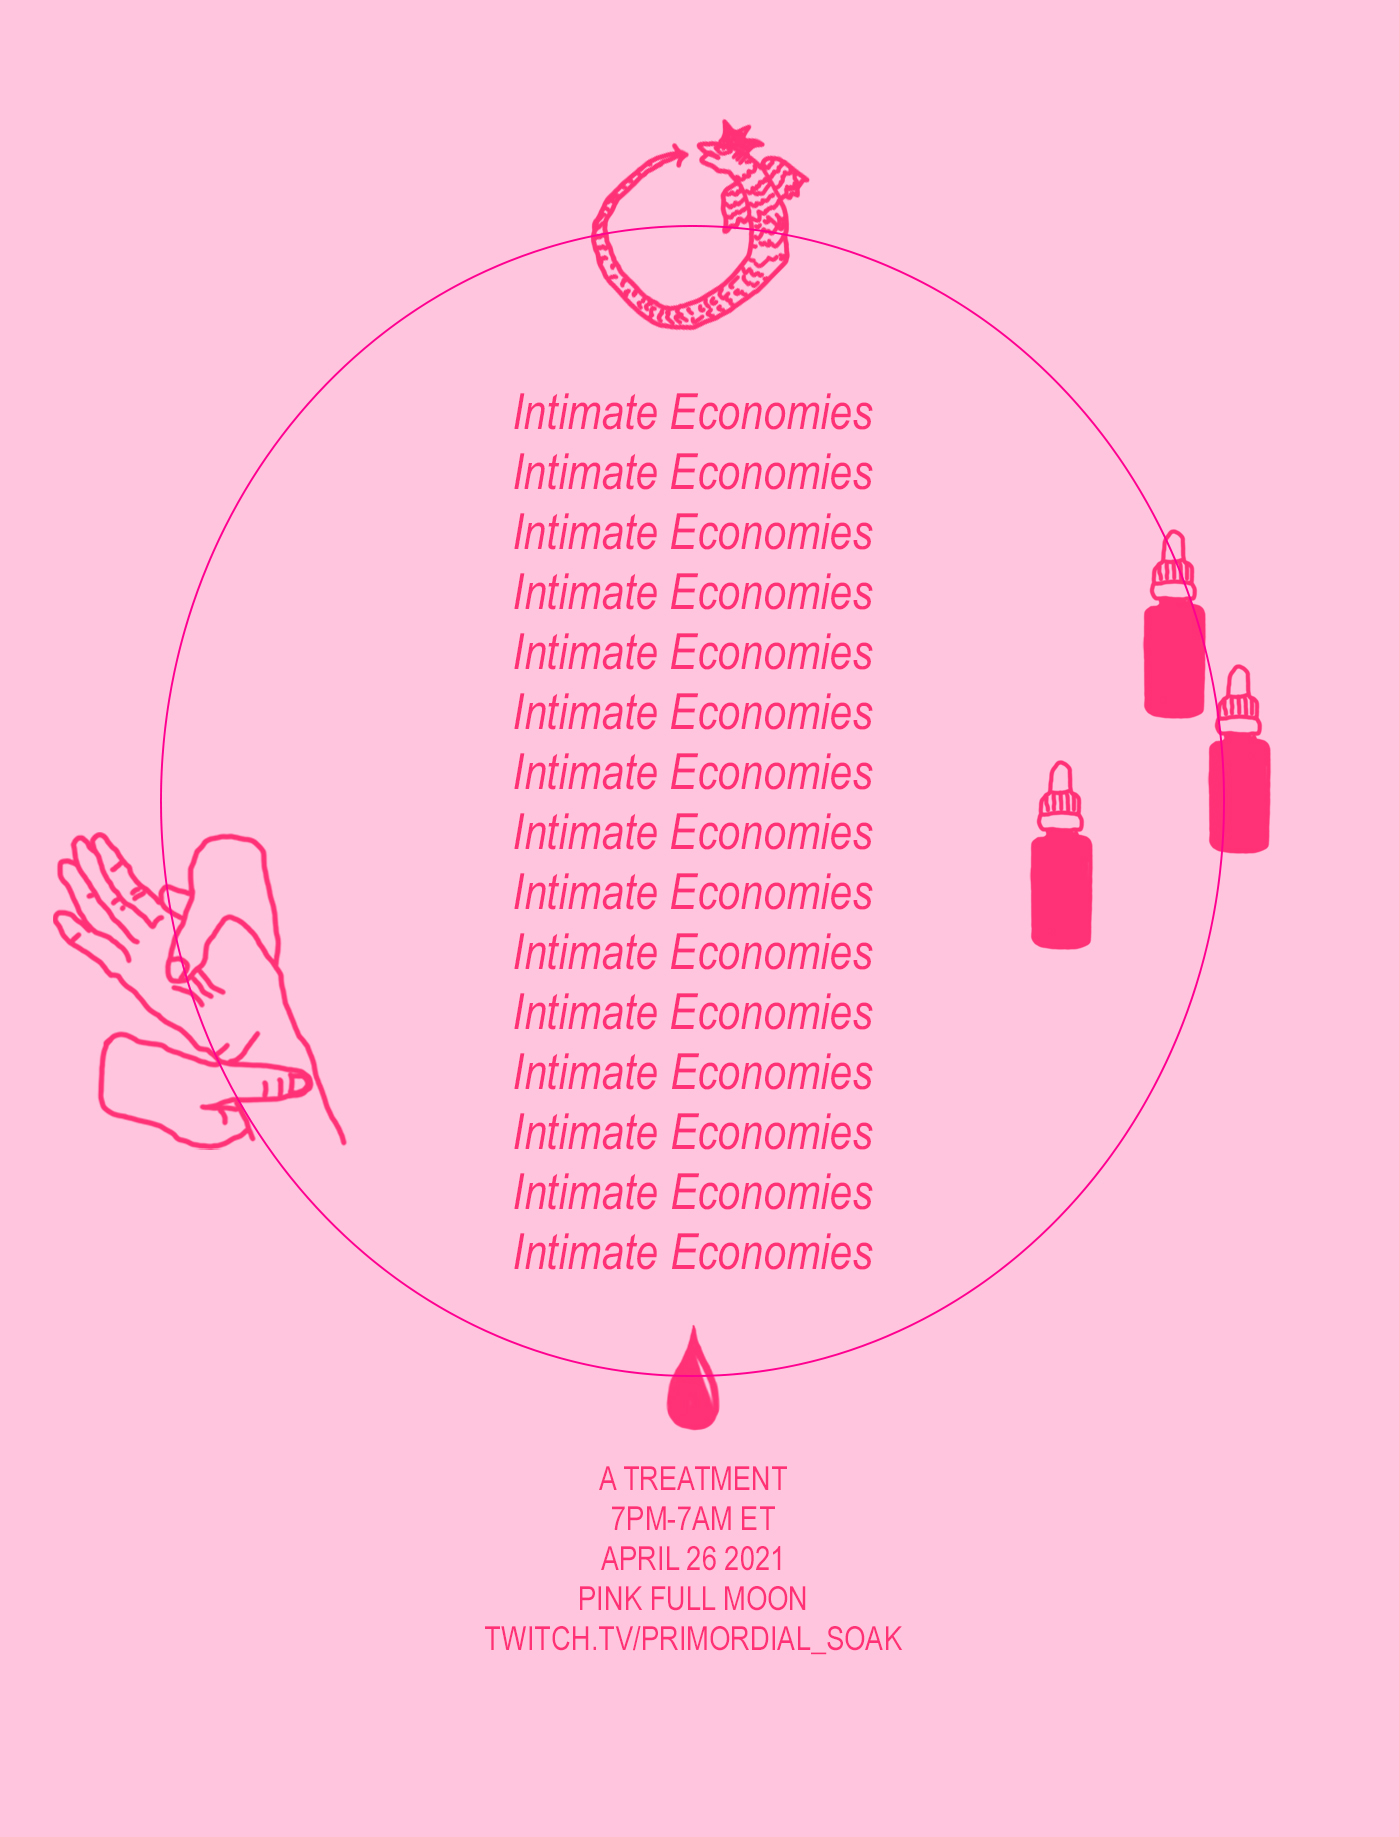 Flyer for Intimate Economies twitch streem on April 26, 2021 at twitch.tv/primordial_soak